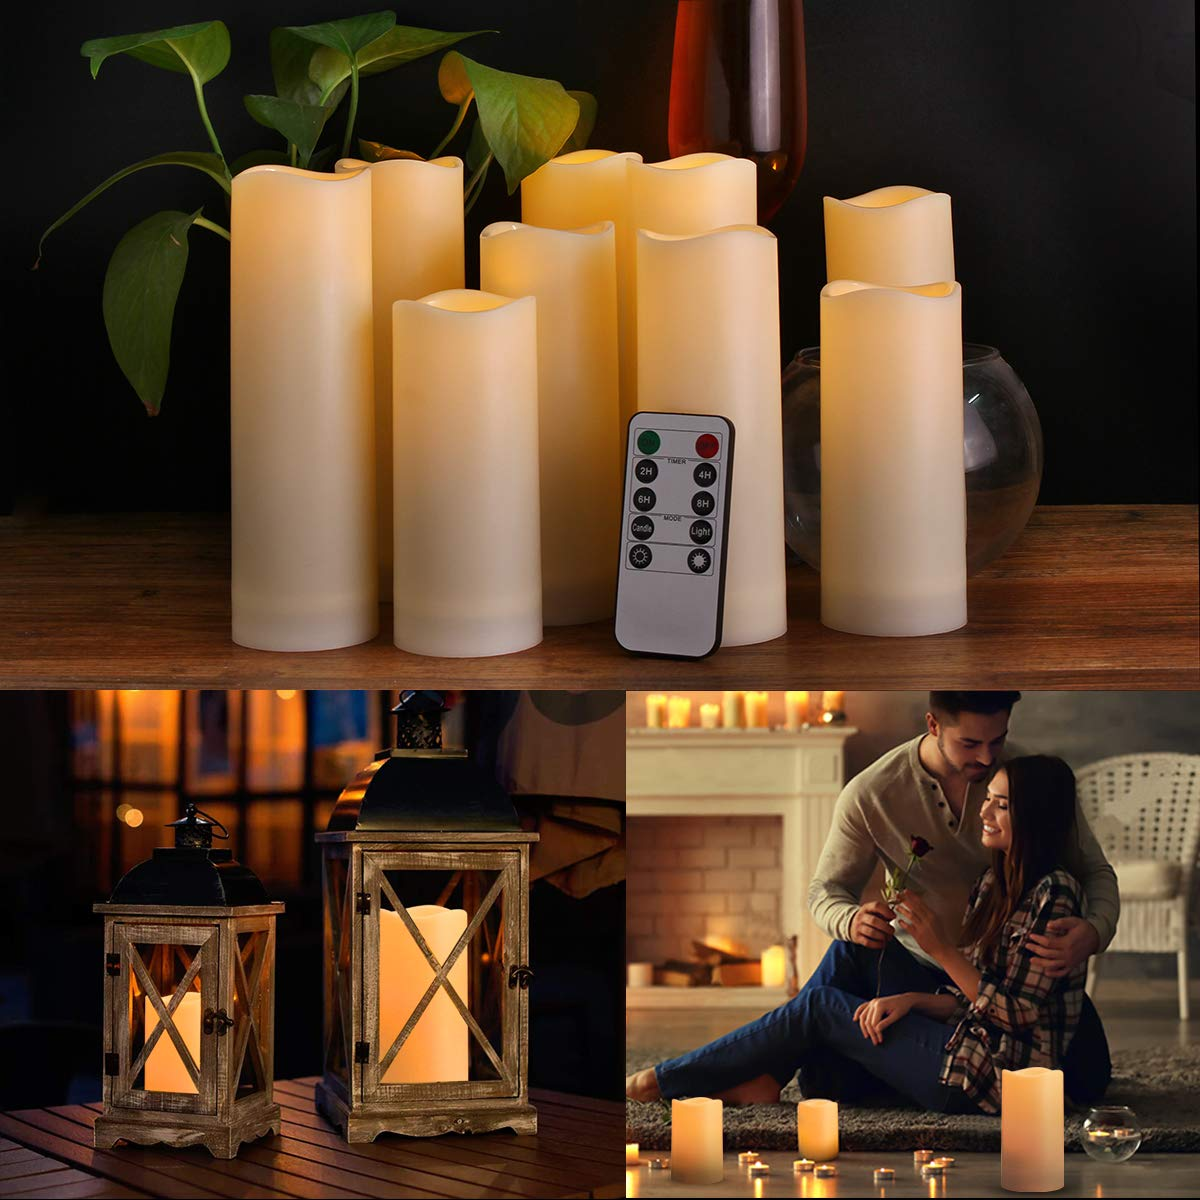 Flameless Candles, Waterproof Outdoor Candles set of 9 ( D 2.2'' X H 5''5''6''6''6''7''7''7''7'' ) LED Candles Battery Operated Candles with Remote Timer, Ivory White by Enido (Image #4)